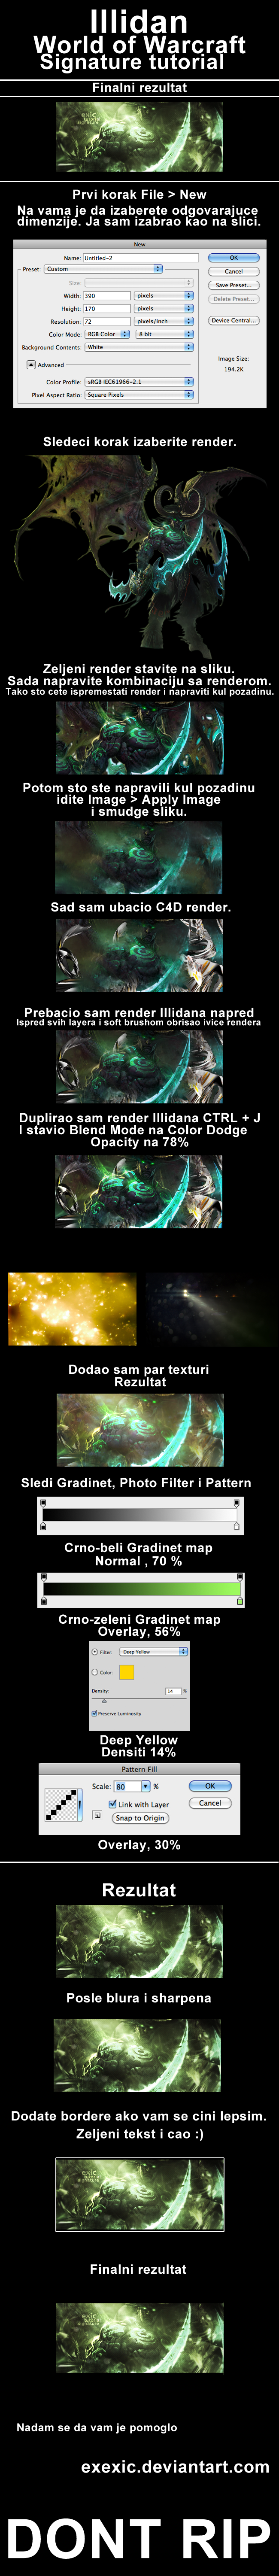 [Image: illidan_signature_tutorial_by_exexic-d3gvls4.png]